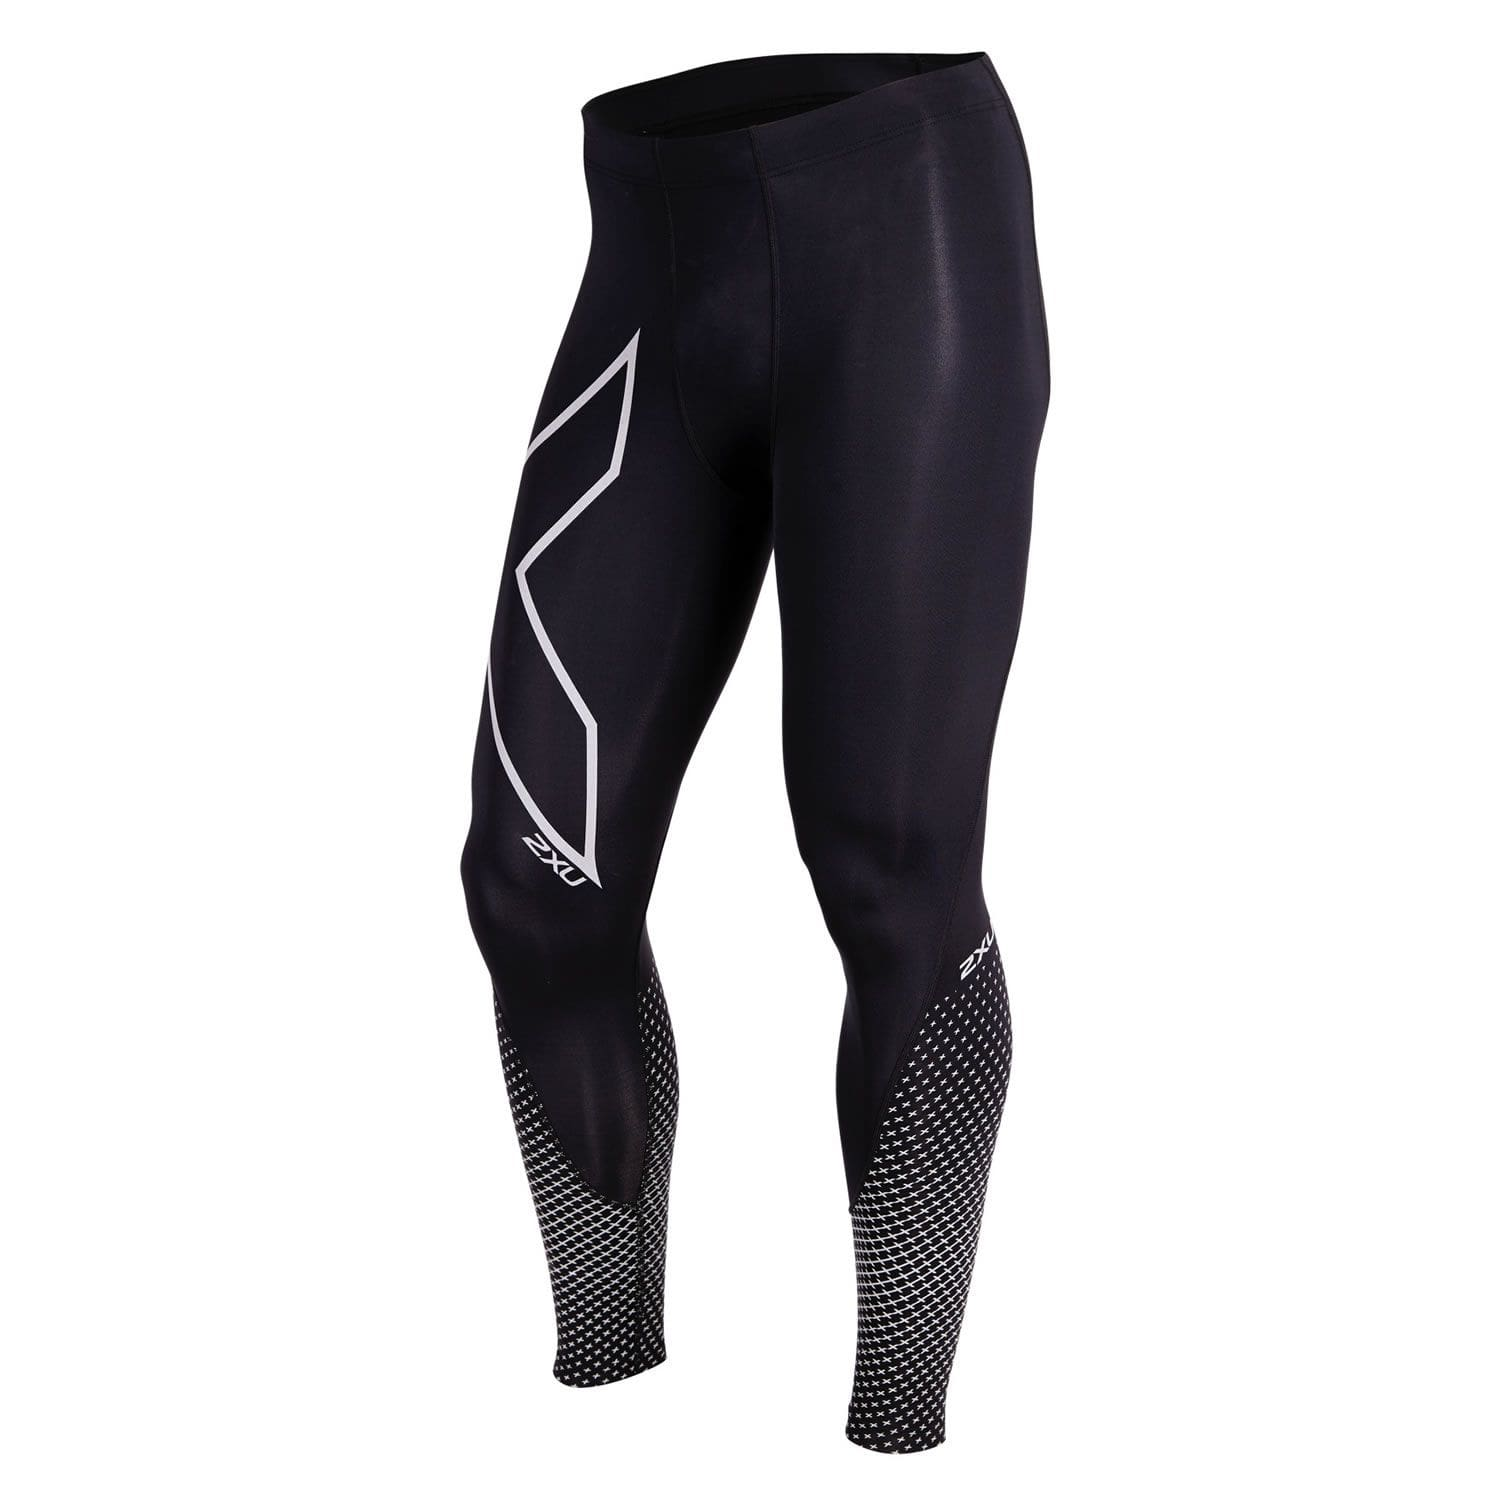 Reflect Compression Tight Herren - 2XU